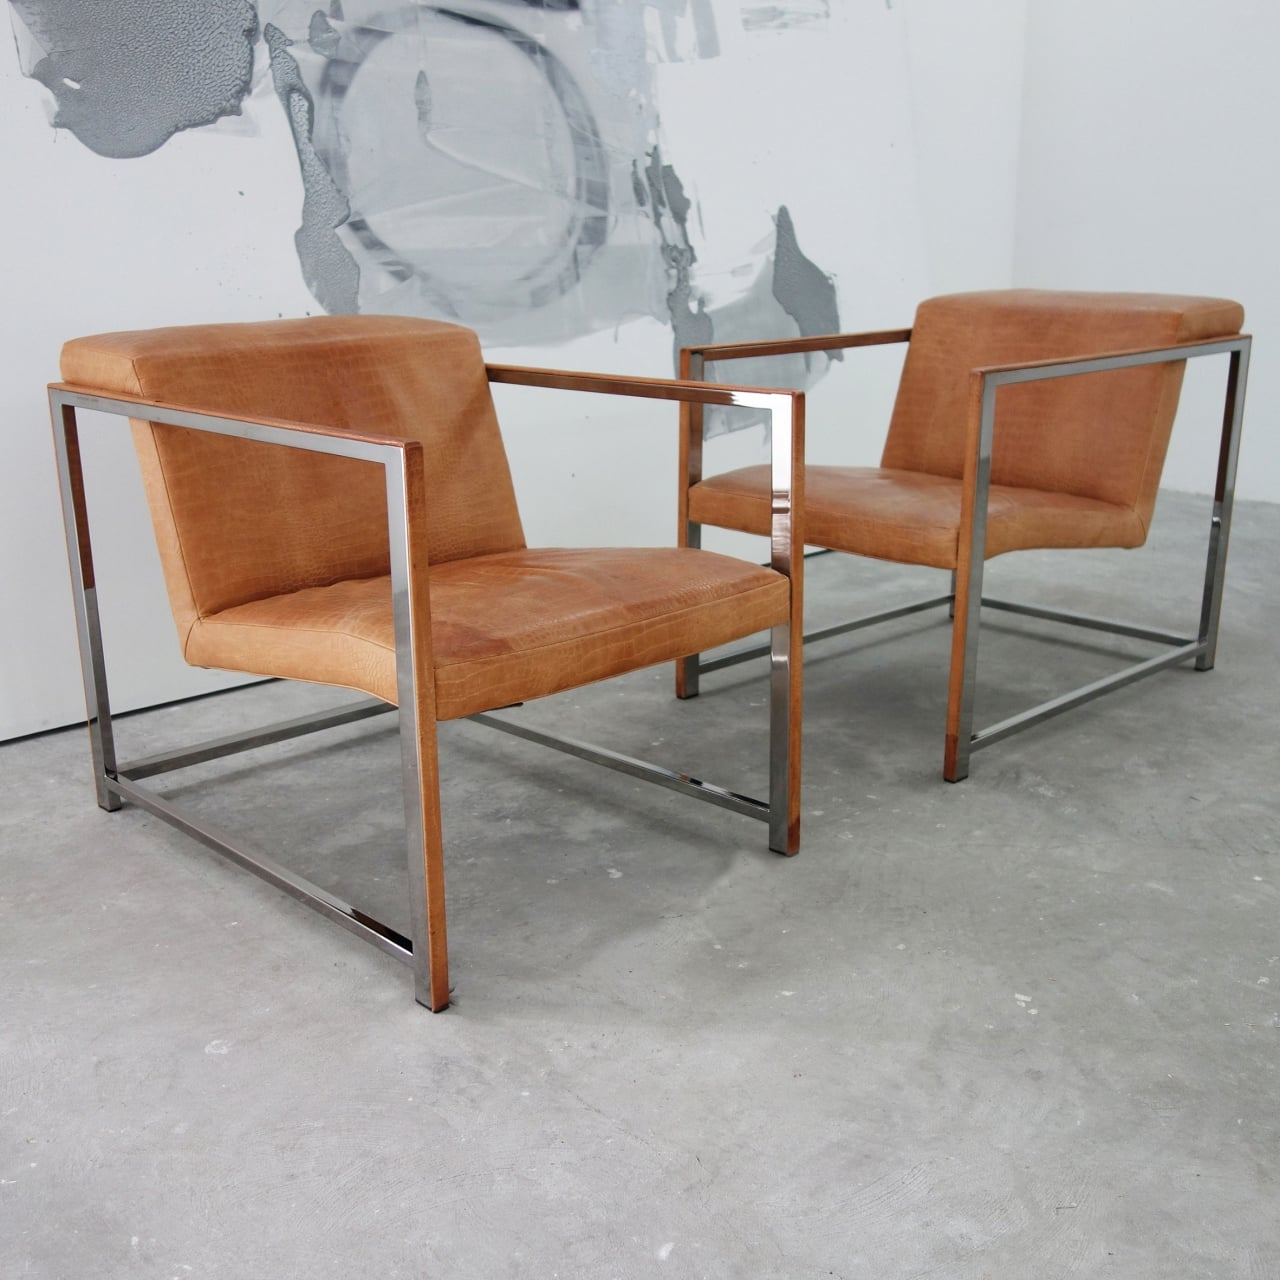 Pair Of Chrome Lounge Chairs By Giuseppe Vigano Bar And Restaurant Furniture The Workshop Co Op